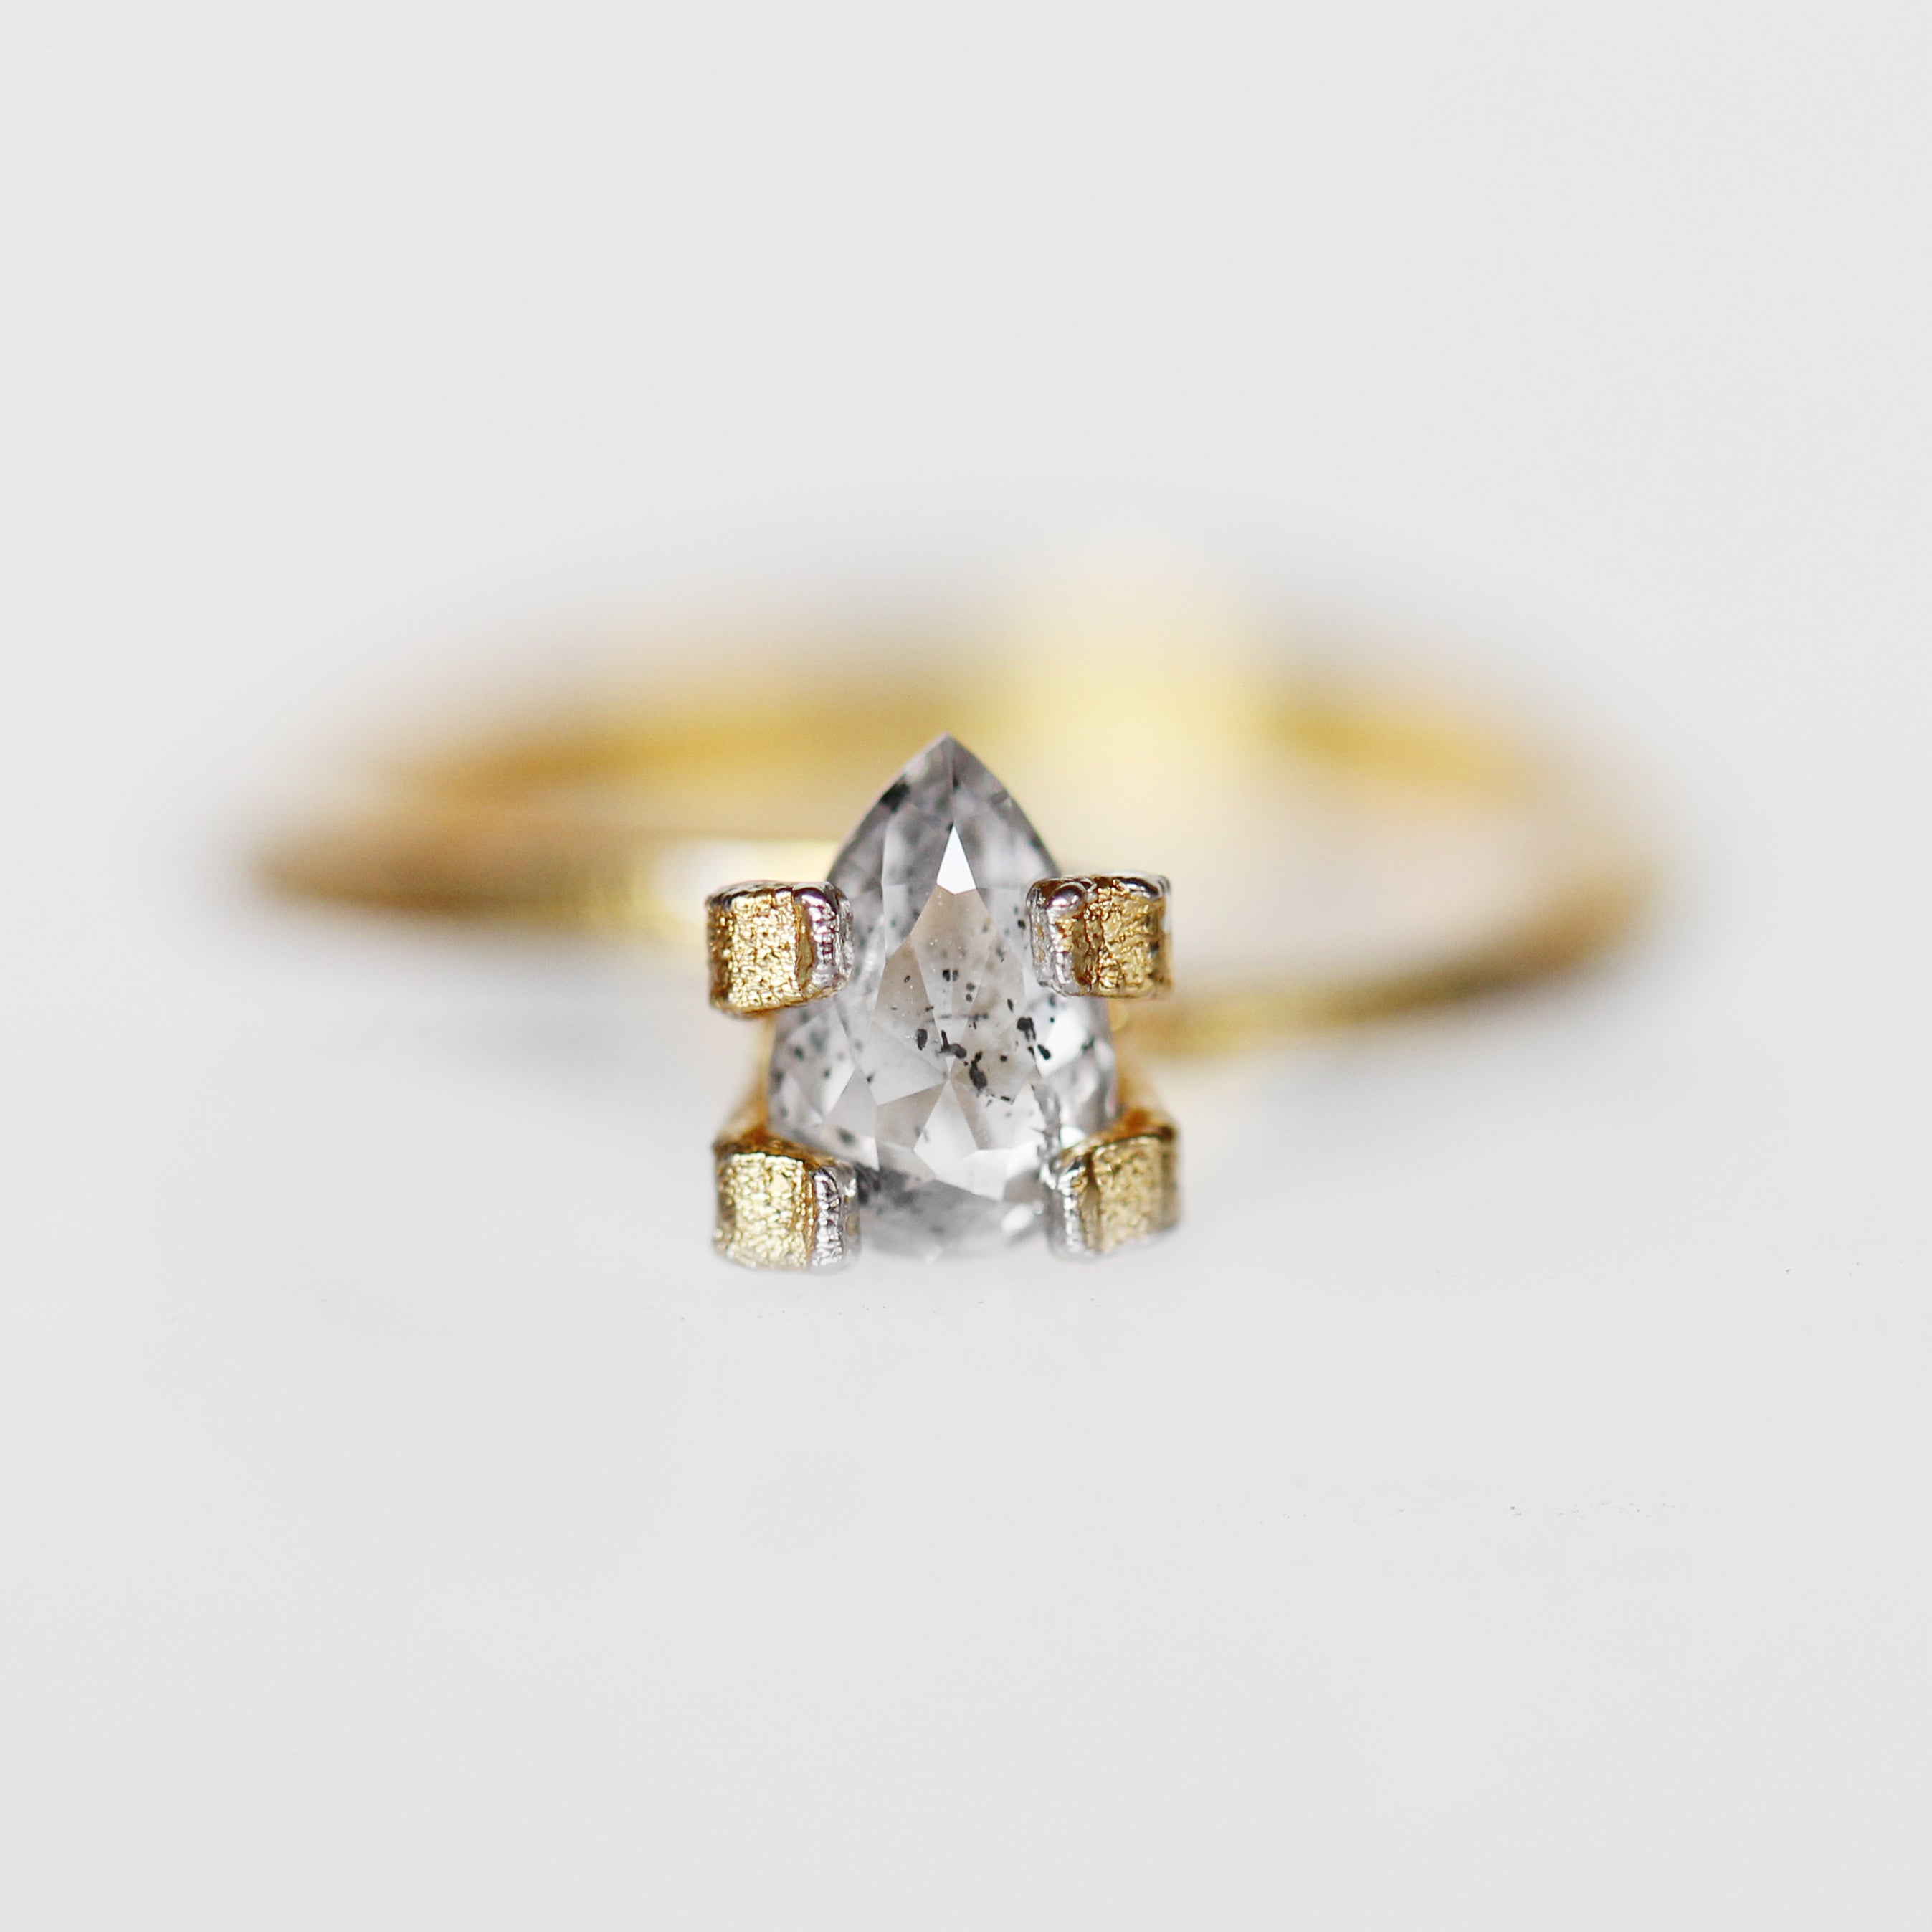 0.51 Carat Pear Diamond - Inventory Code PRC51 - Celestial Diamonds ® by Midwinter Co.